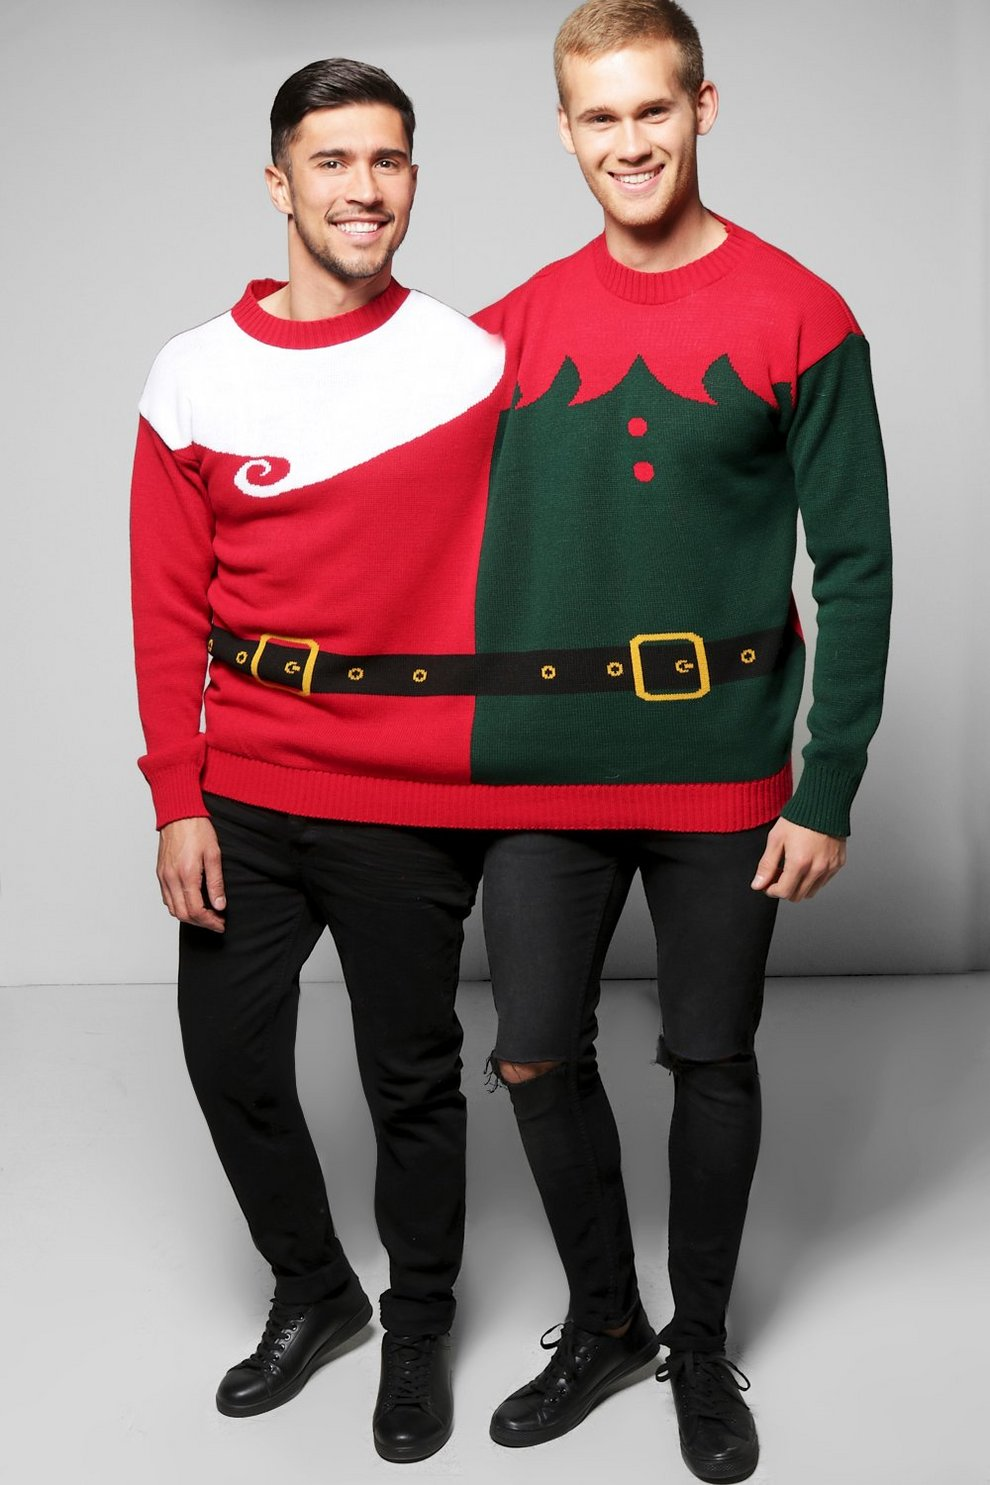 2 Person Elf Santa Christmas Jumper Boohoo